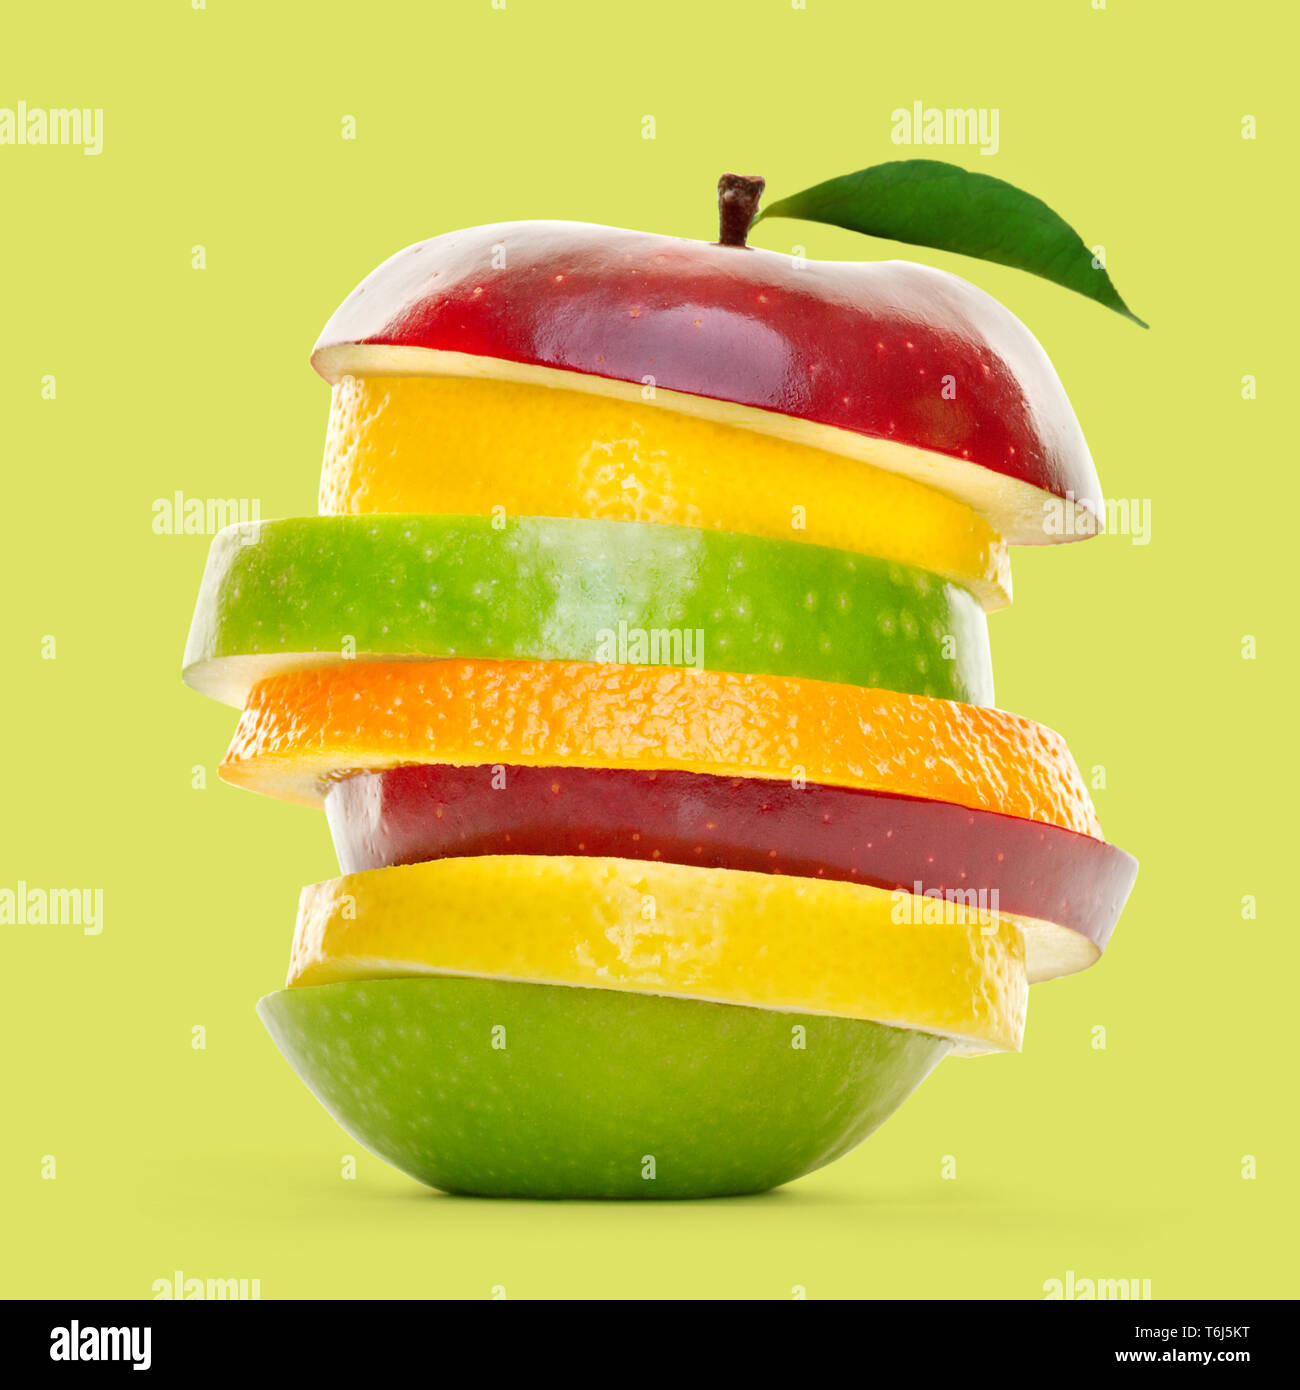 Mixed fruit slices piled up and isolated on green background. Stock Photo